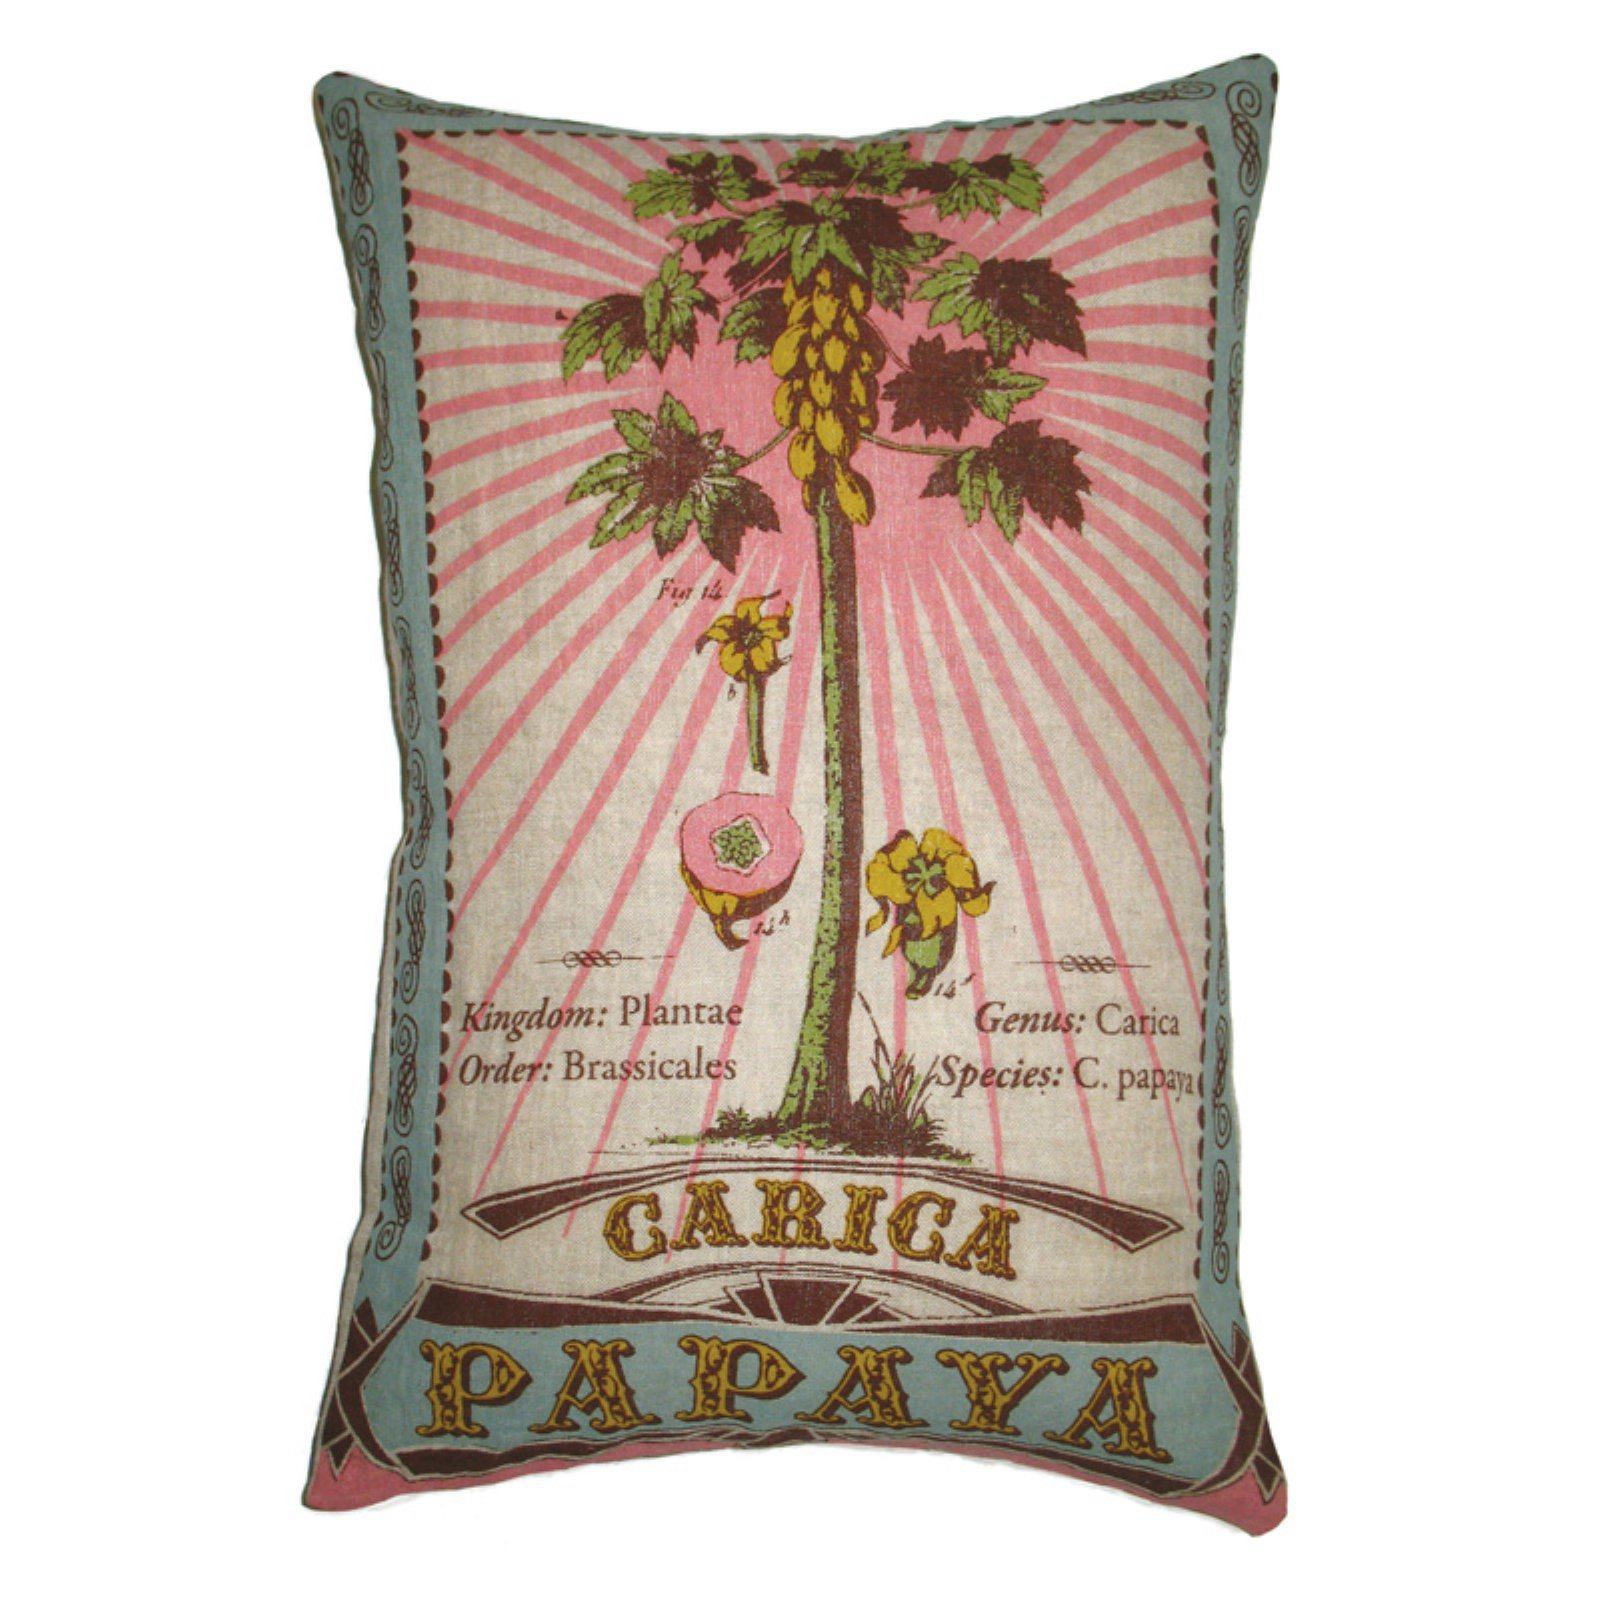 Koko Company Botanica Carica Papaya Decorative Pillow